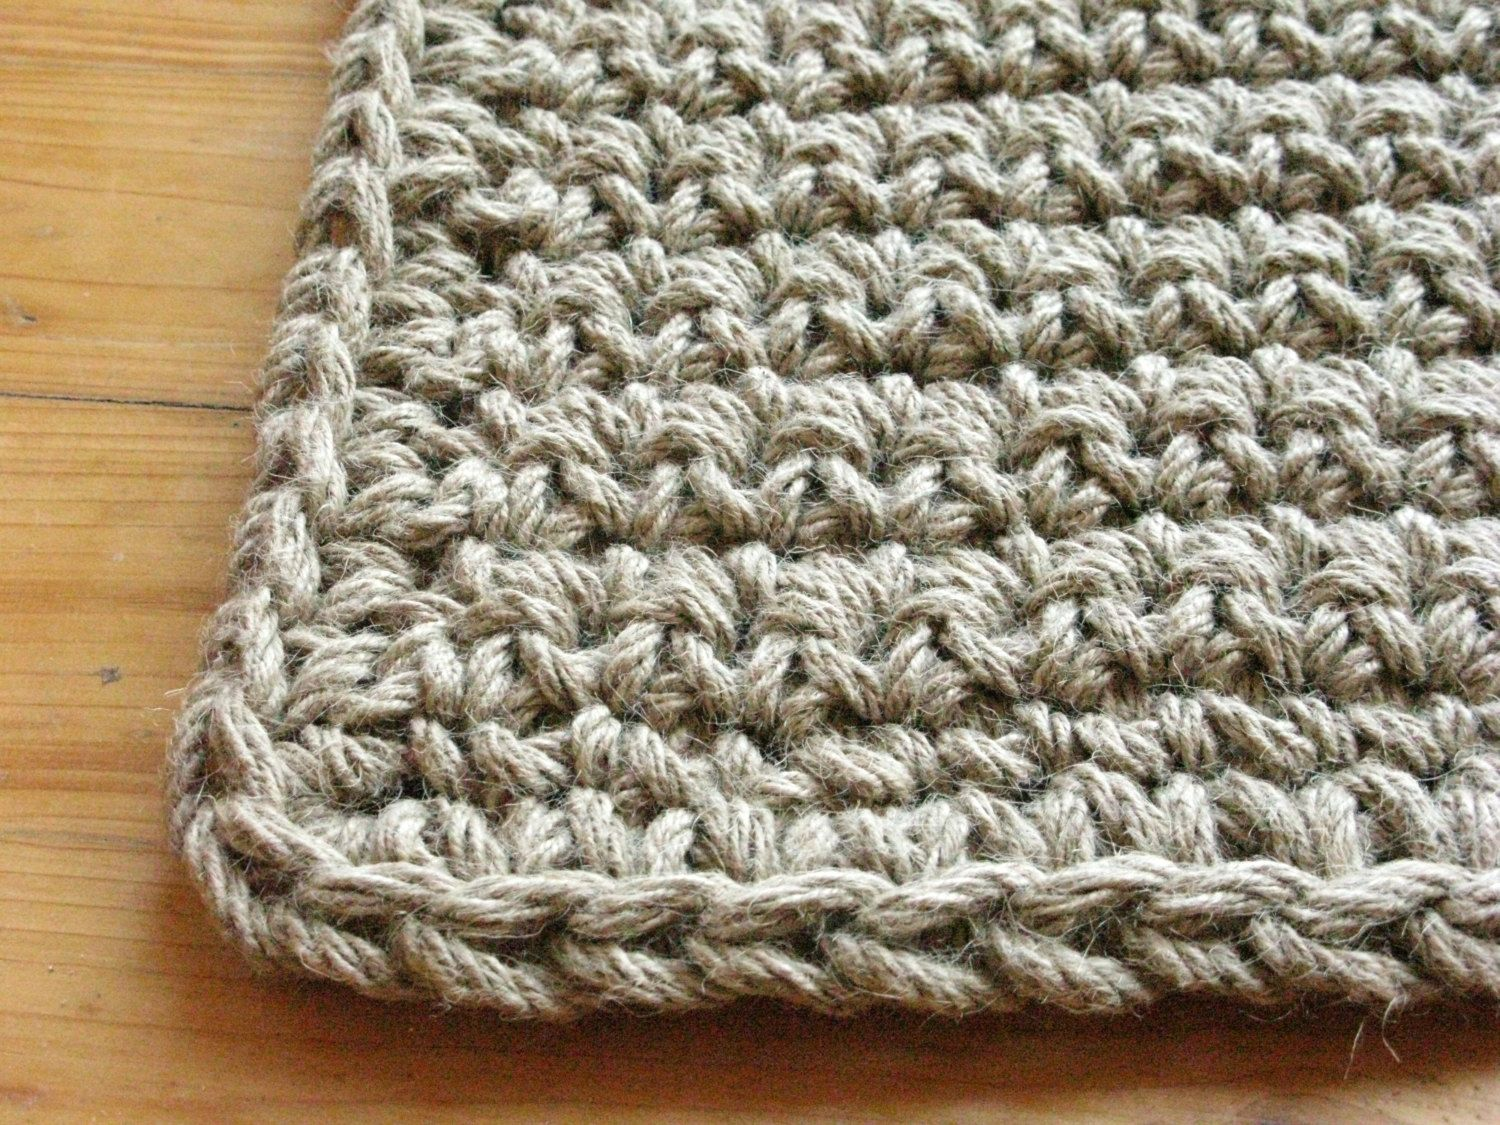 Crochet jute door rug, doormat. Welcome rug. 100% naturals ...